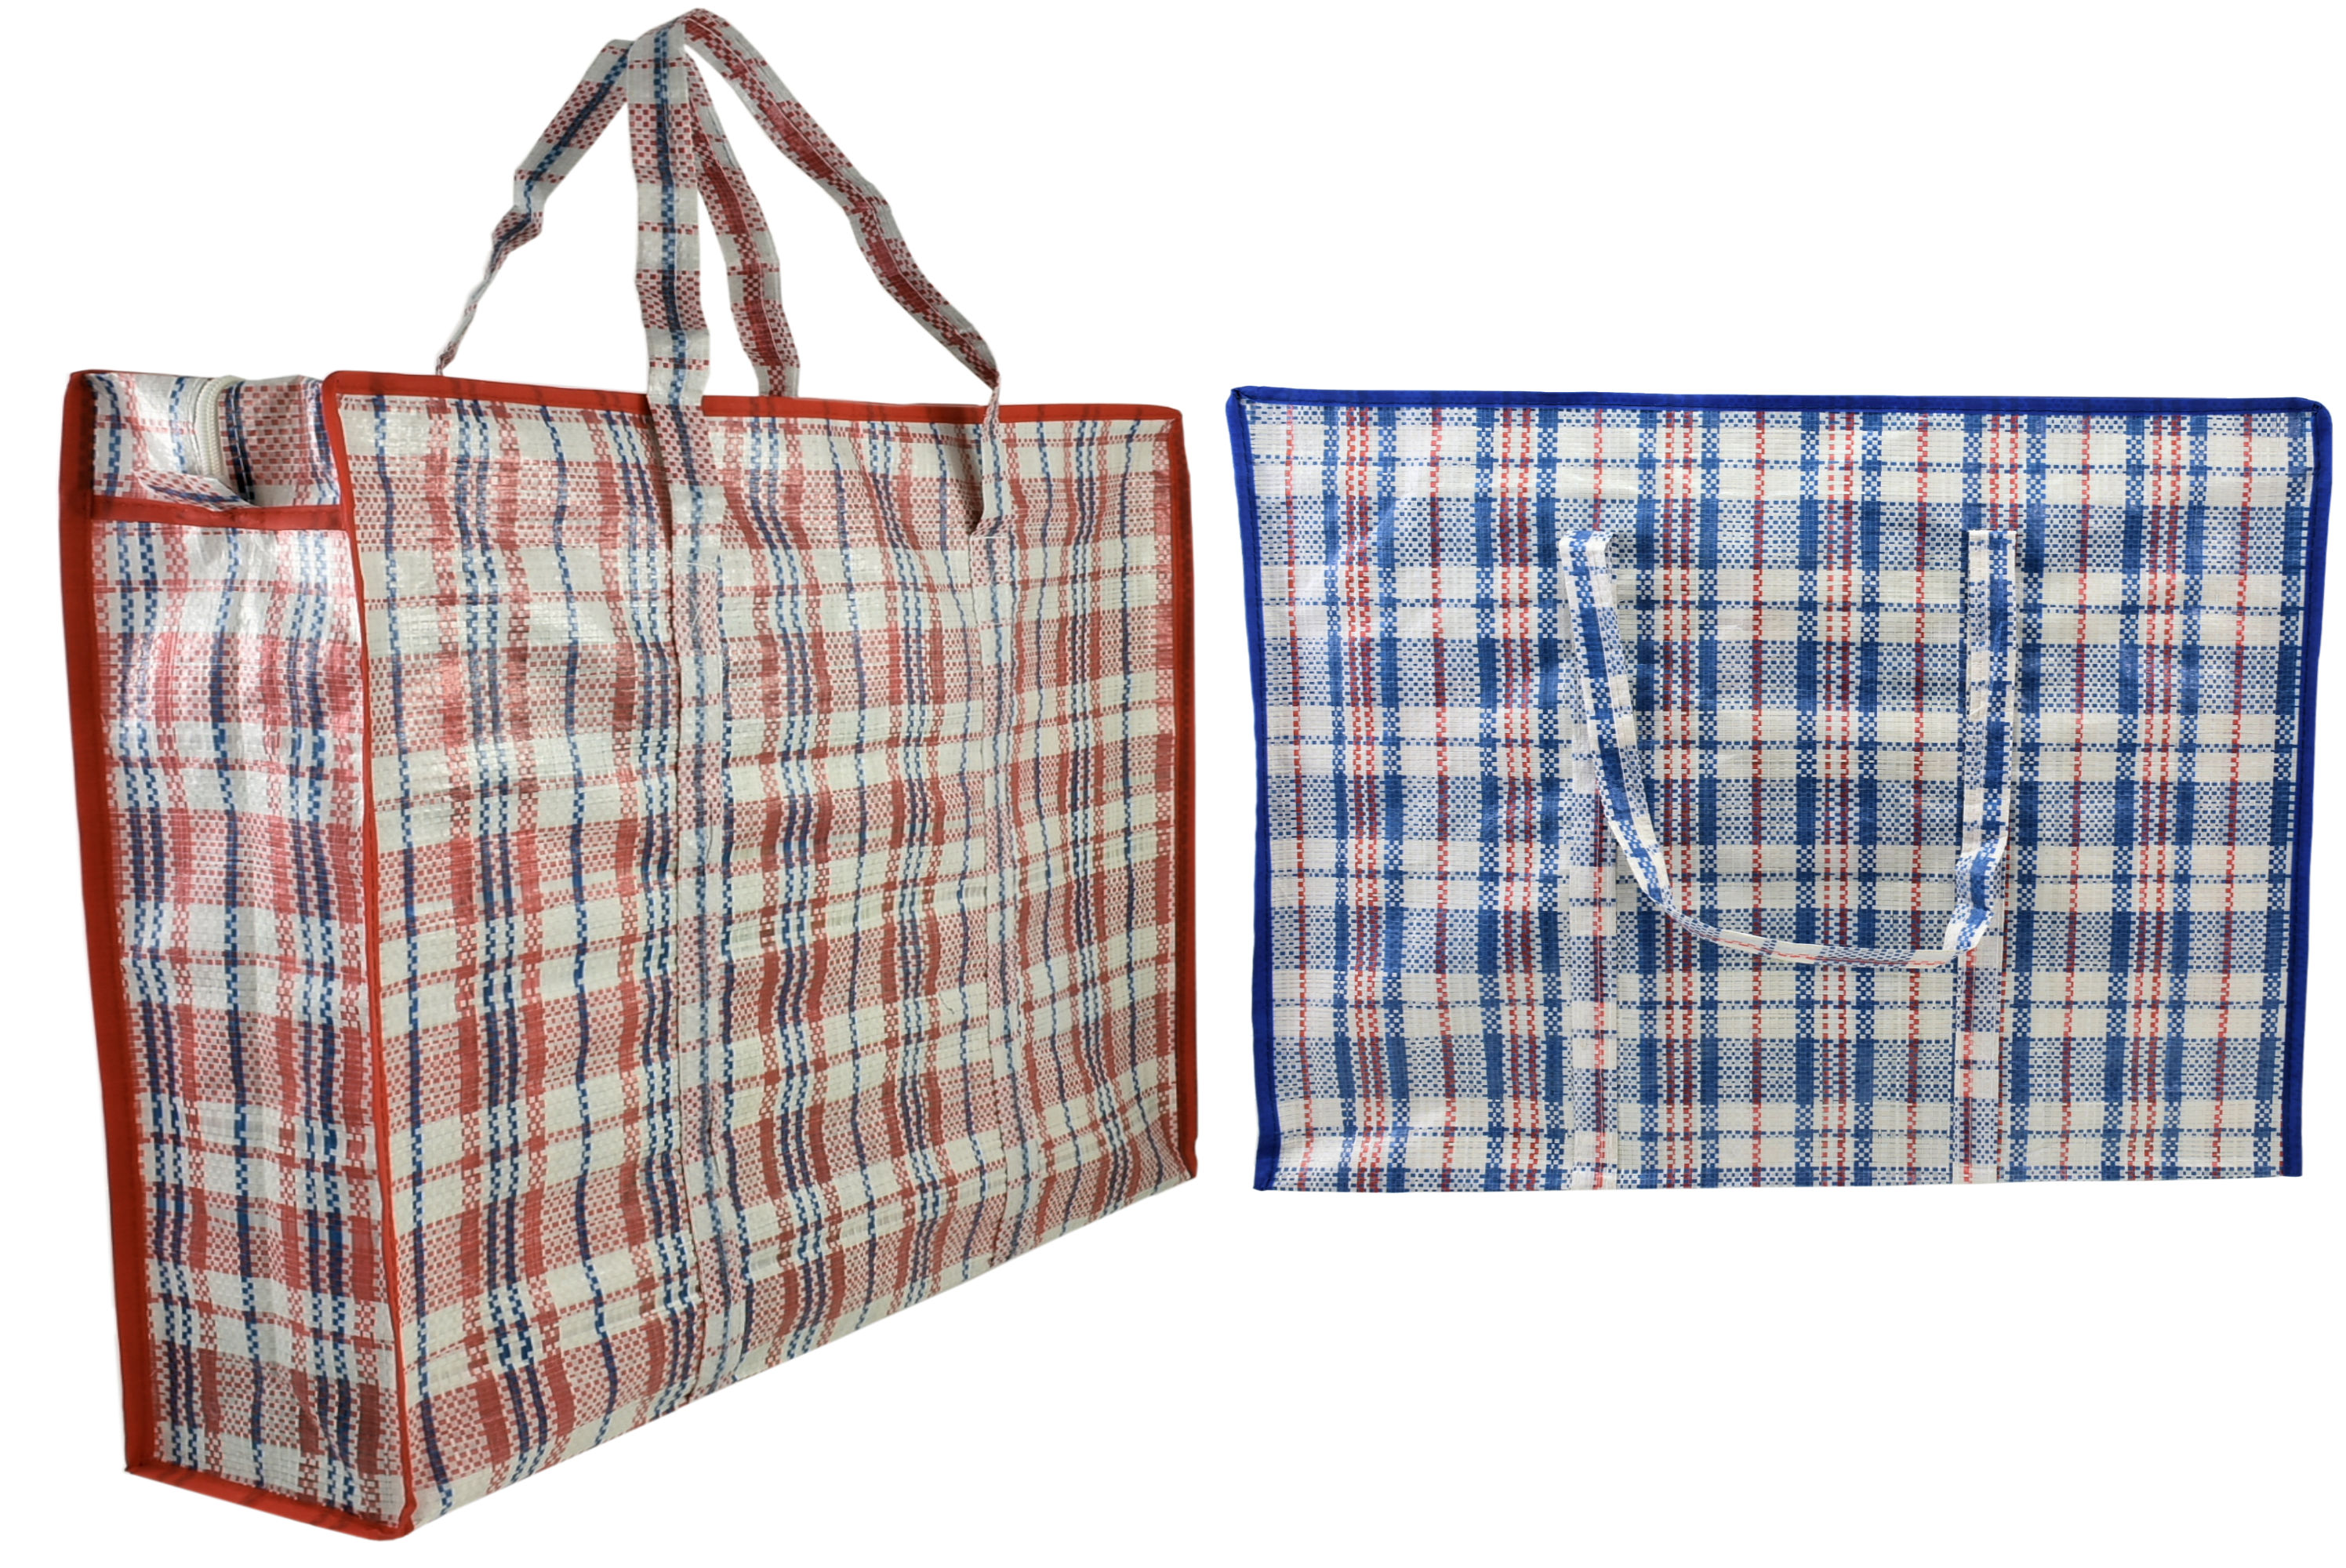 50x50x13cm Striped Shopping Bag 95gsm 2 Asst Red & Blue